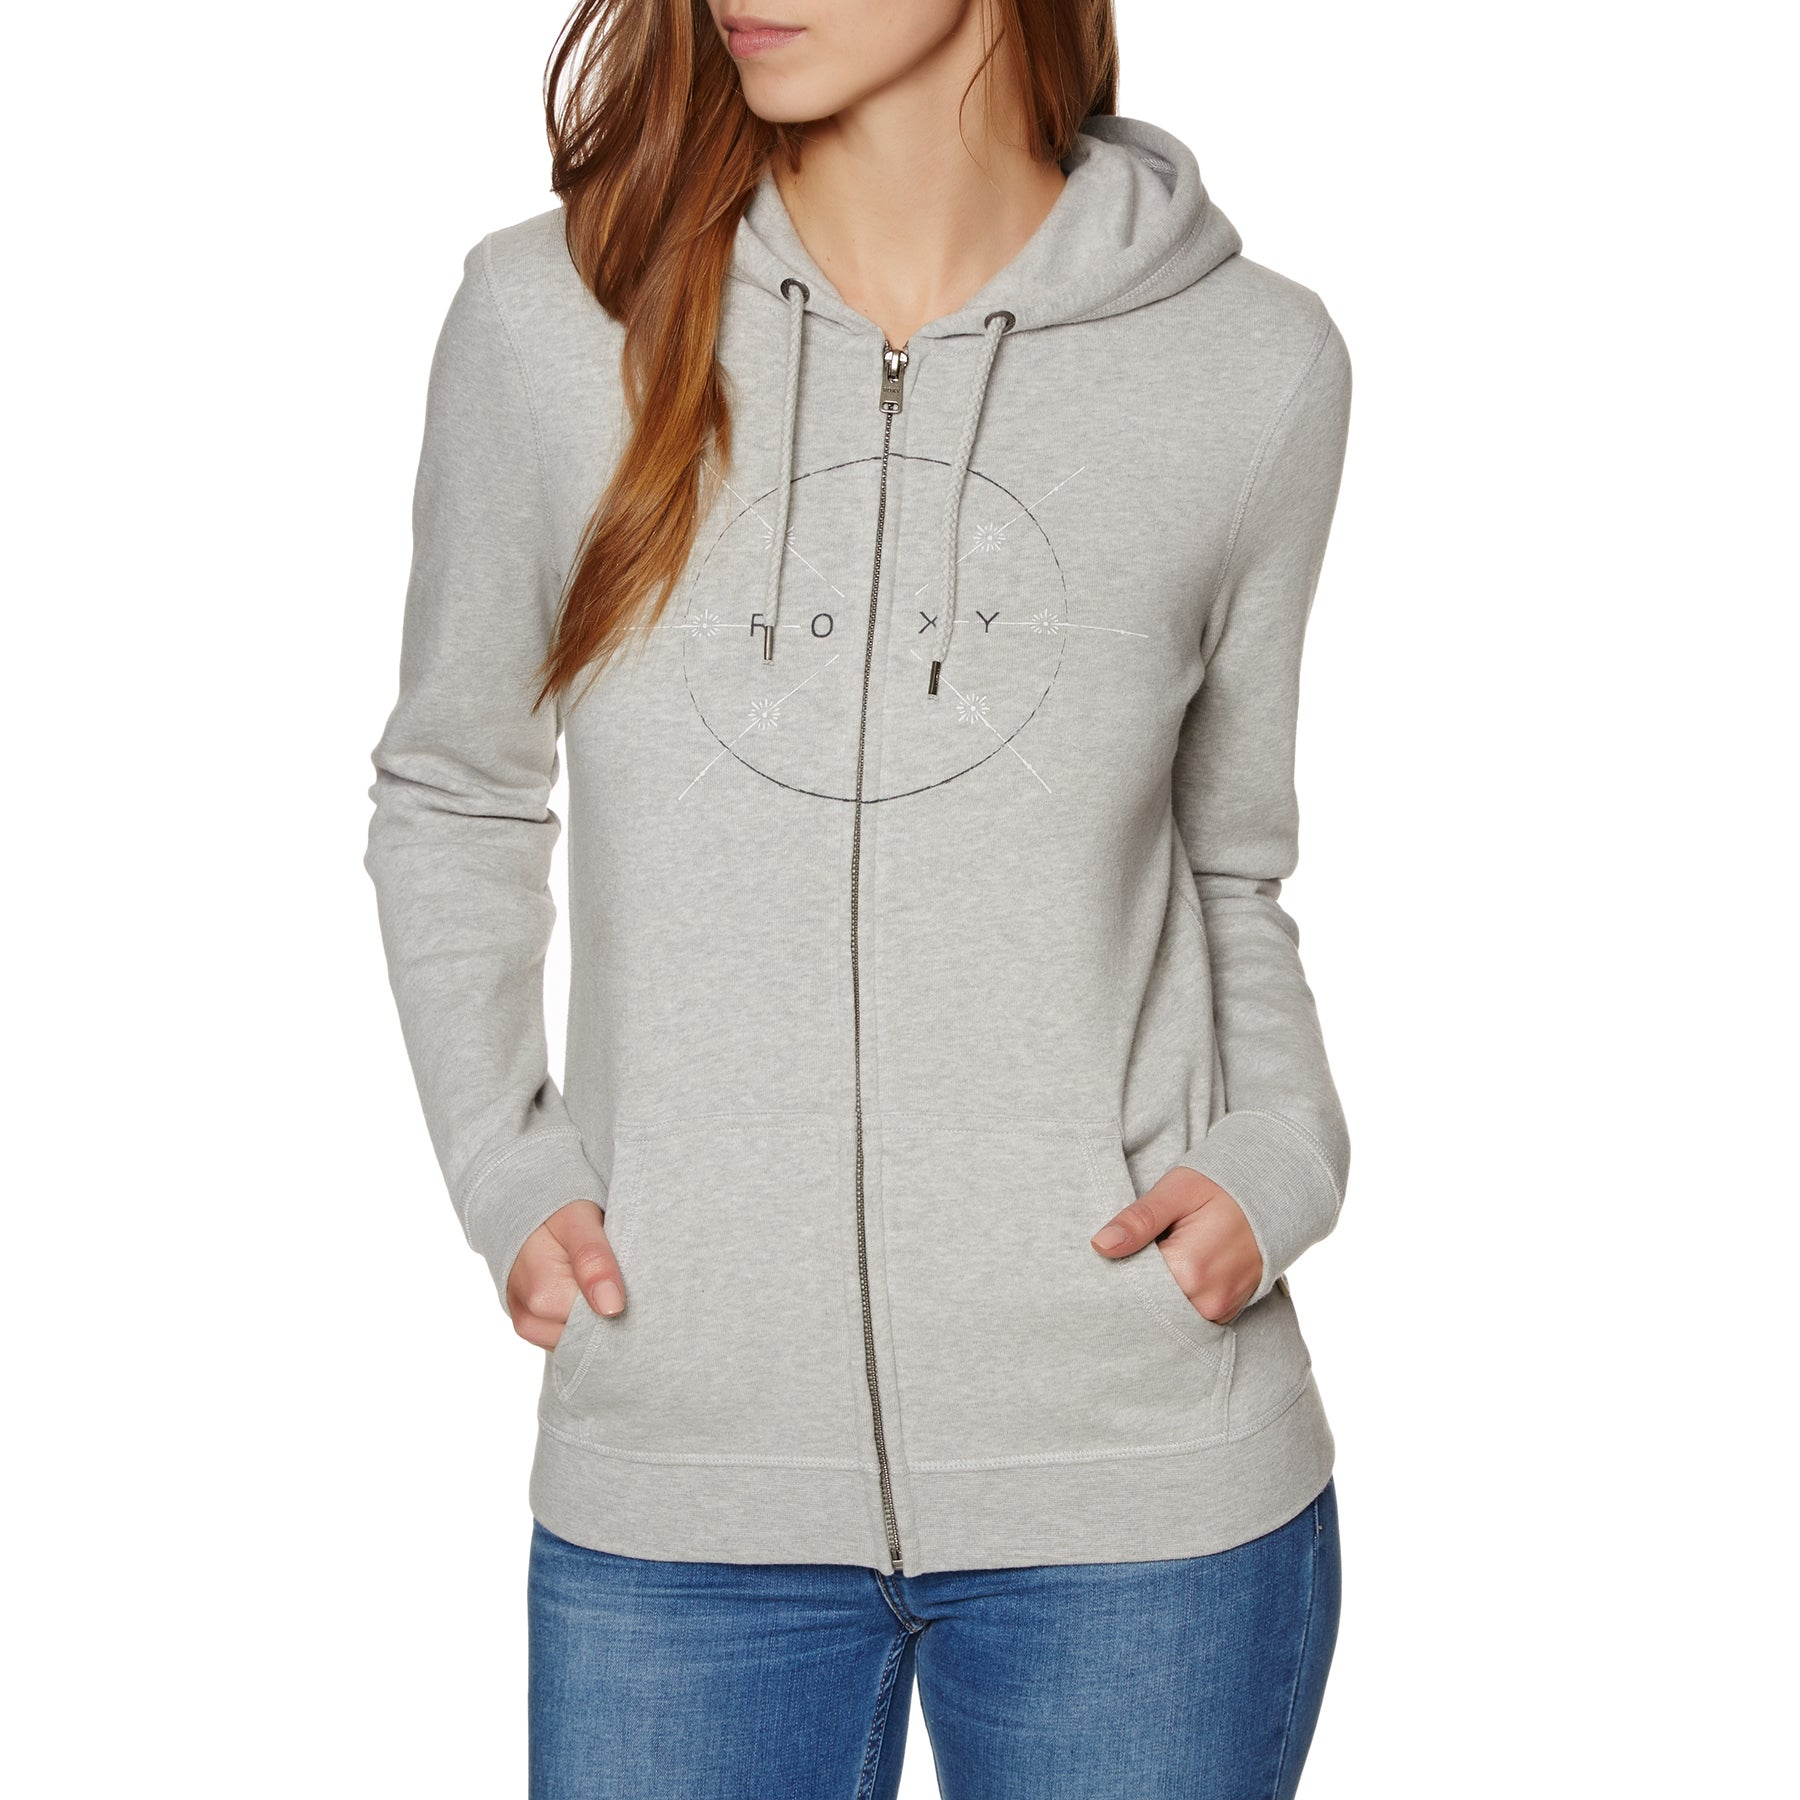 Roxy Full Of Joy Womens Zip Hoody - Heritage Heather